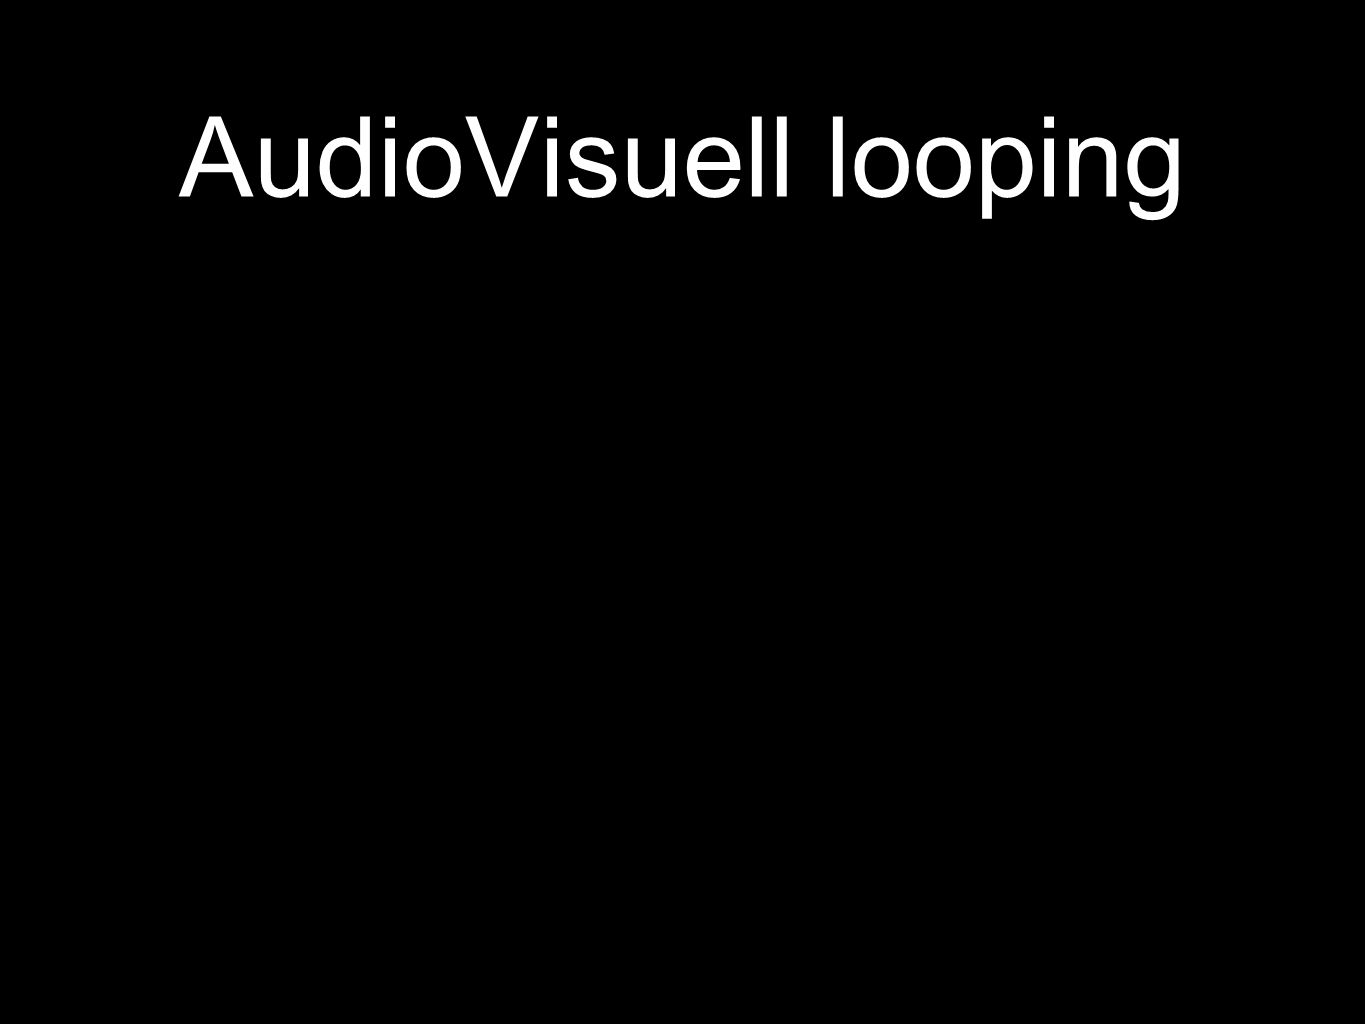 AudioVisuell looping